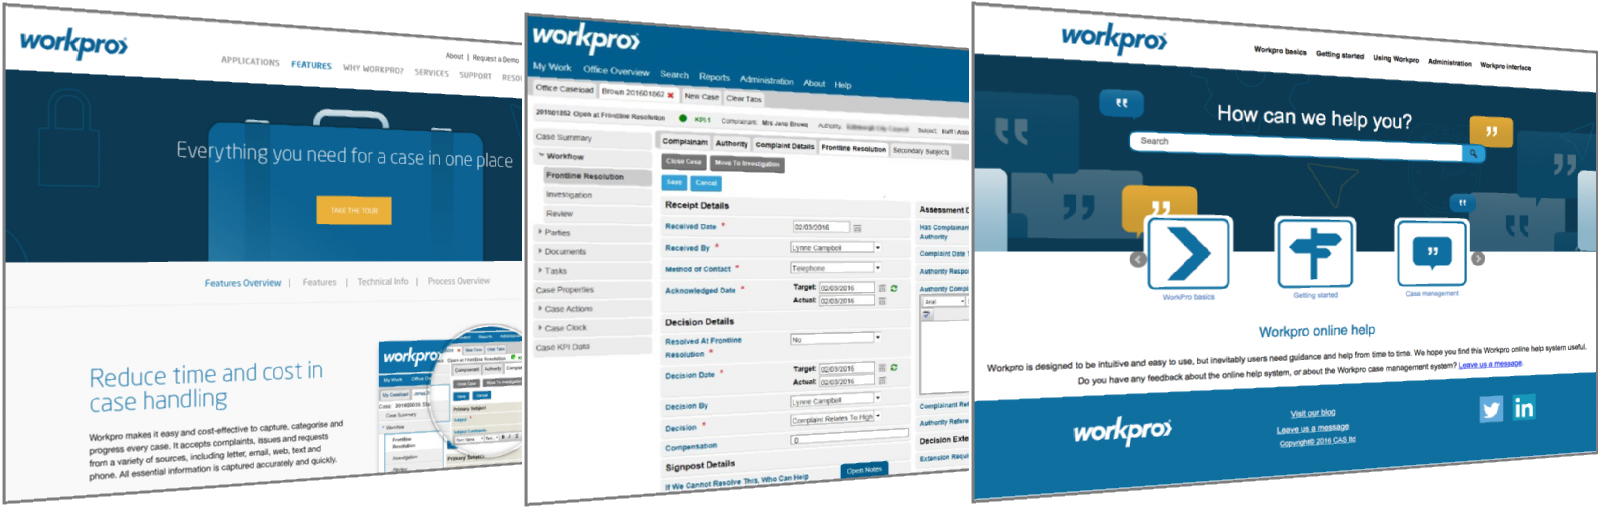 Comprehensive new Workpro product documentation created by doc-department